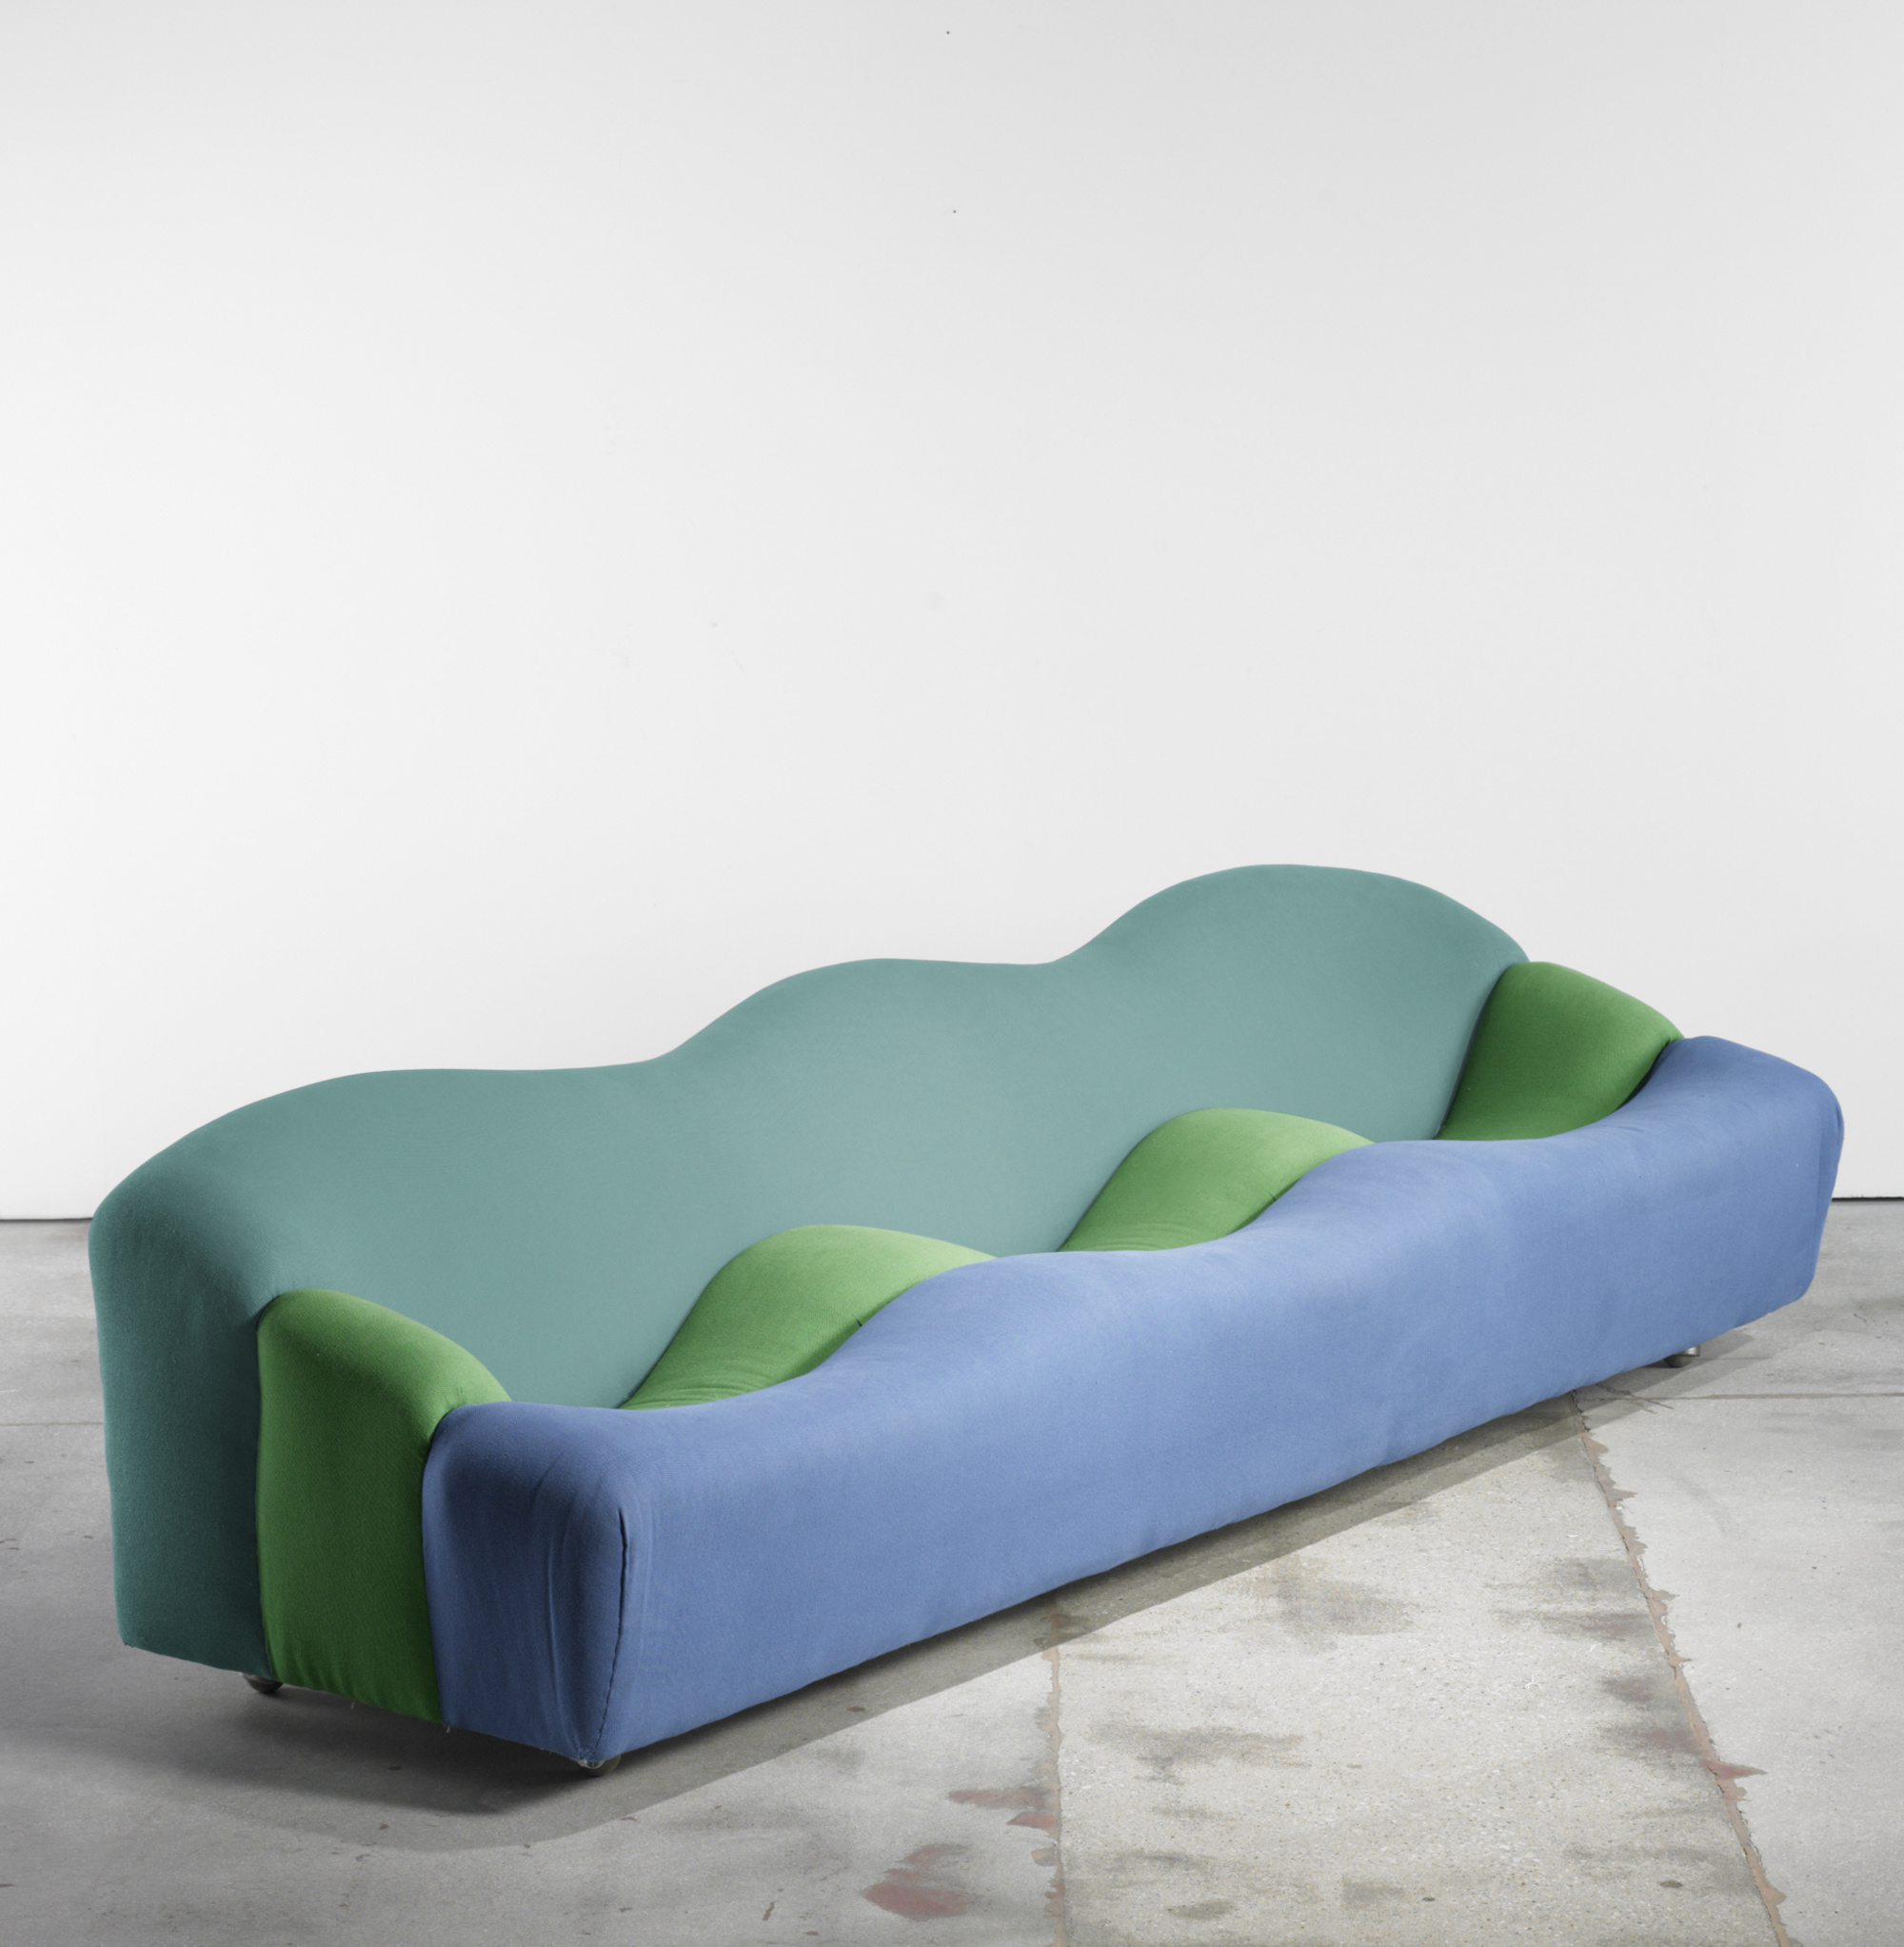 Pierre Paulin Sofa 489 Pierre Paulin Abcd Sofa Modern Design 23 March 2010